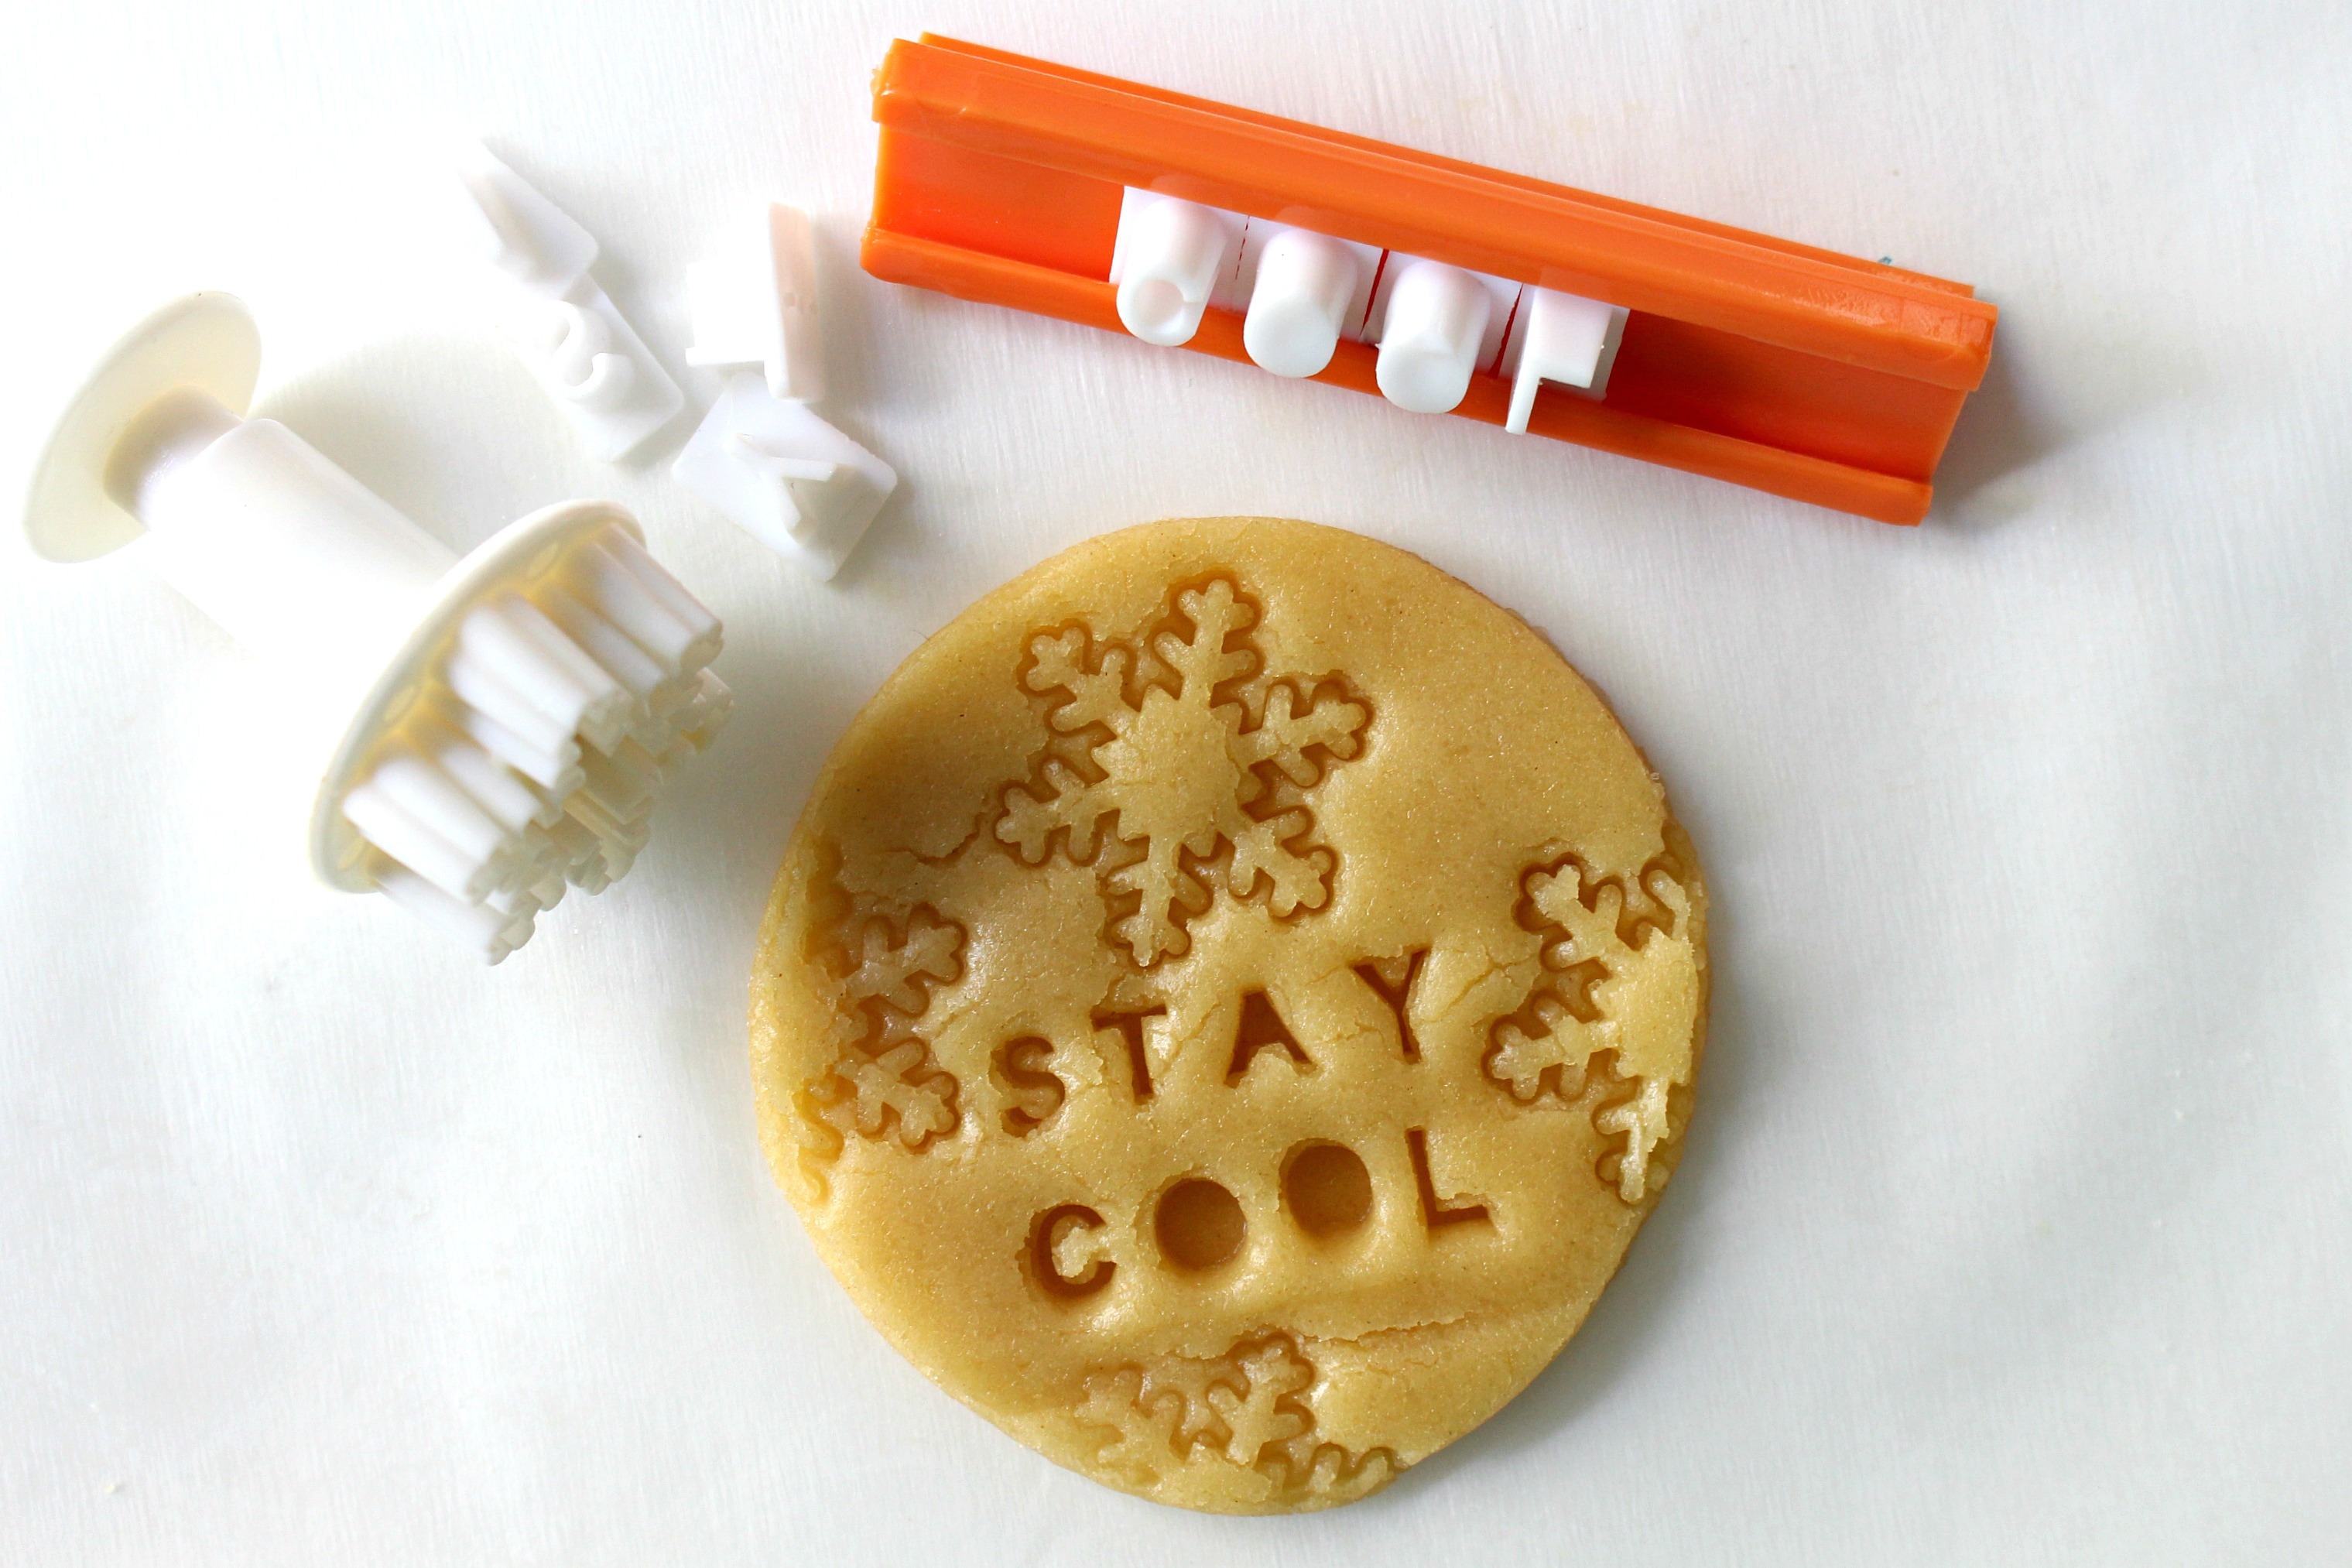 stay cool imprinted cookies for military care package 24 the